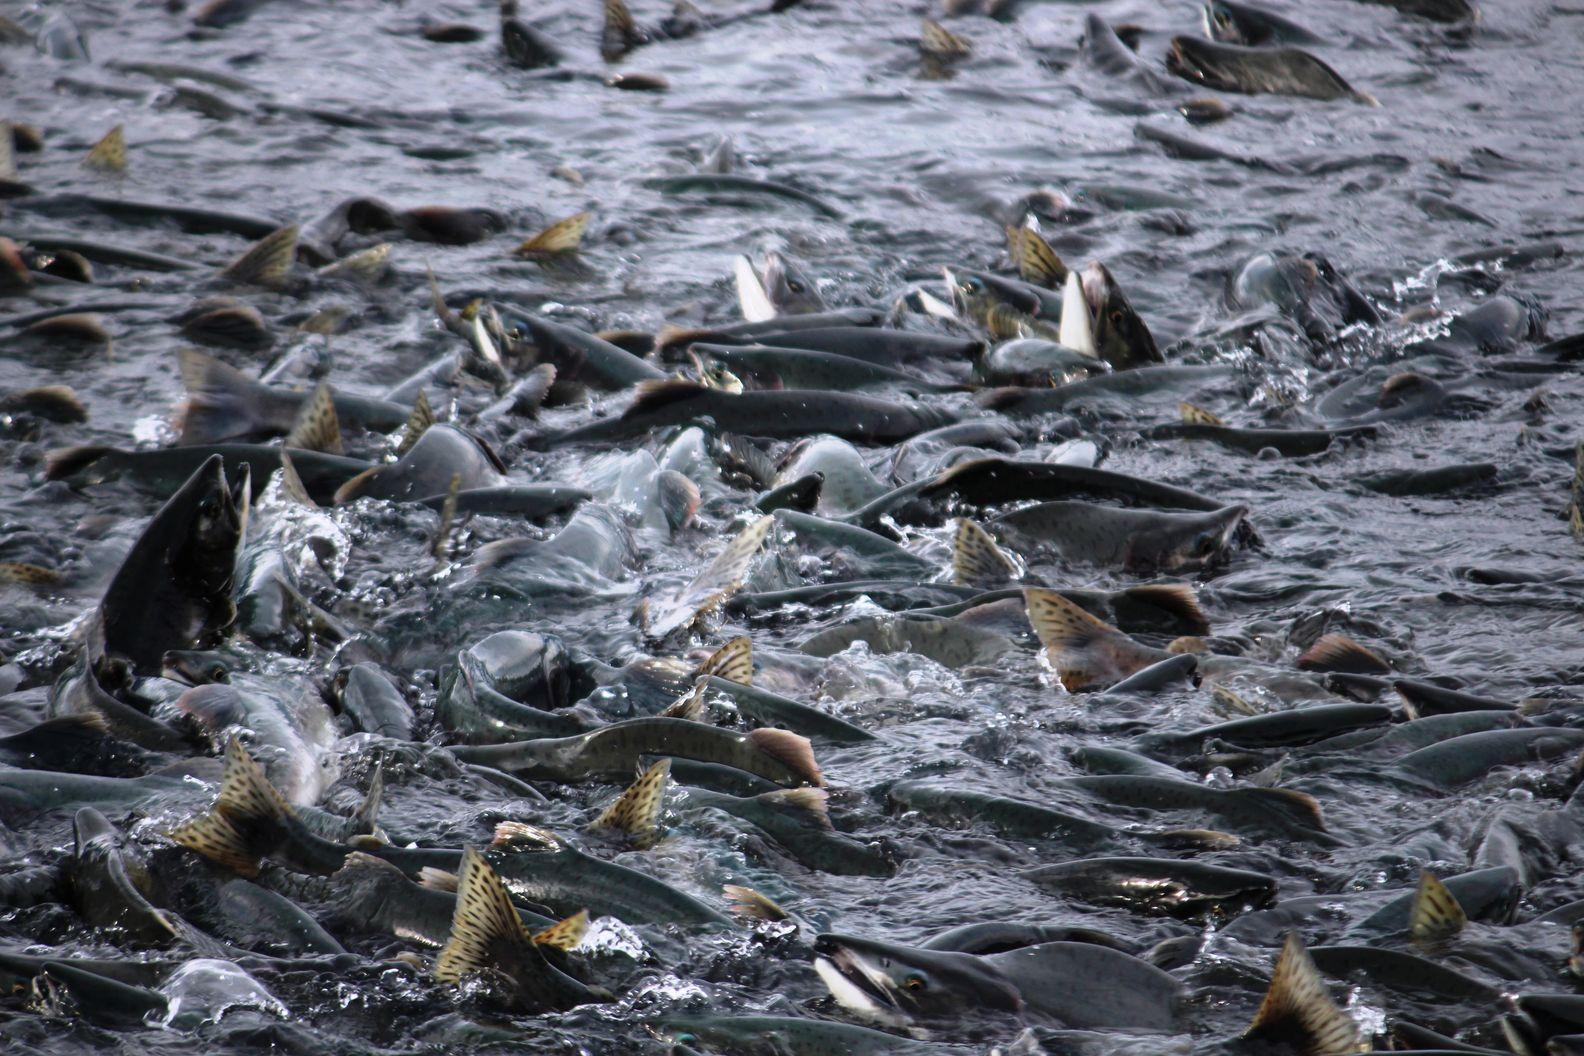 22 water-wildlife-fish-salmon-alaska-pollution-valdez-salmon-migration- by .